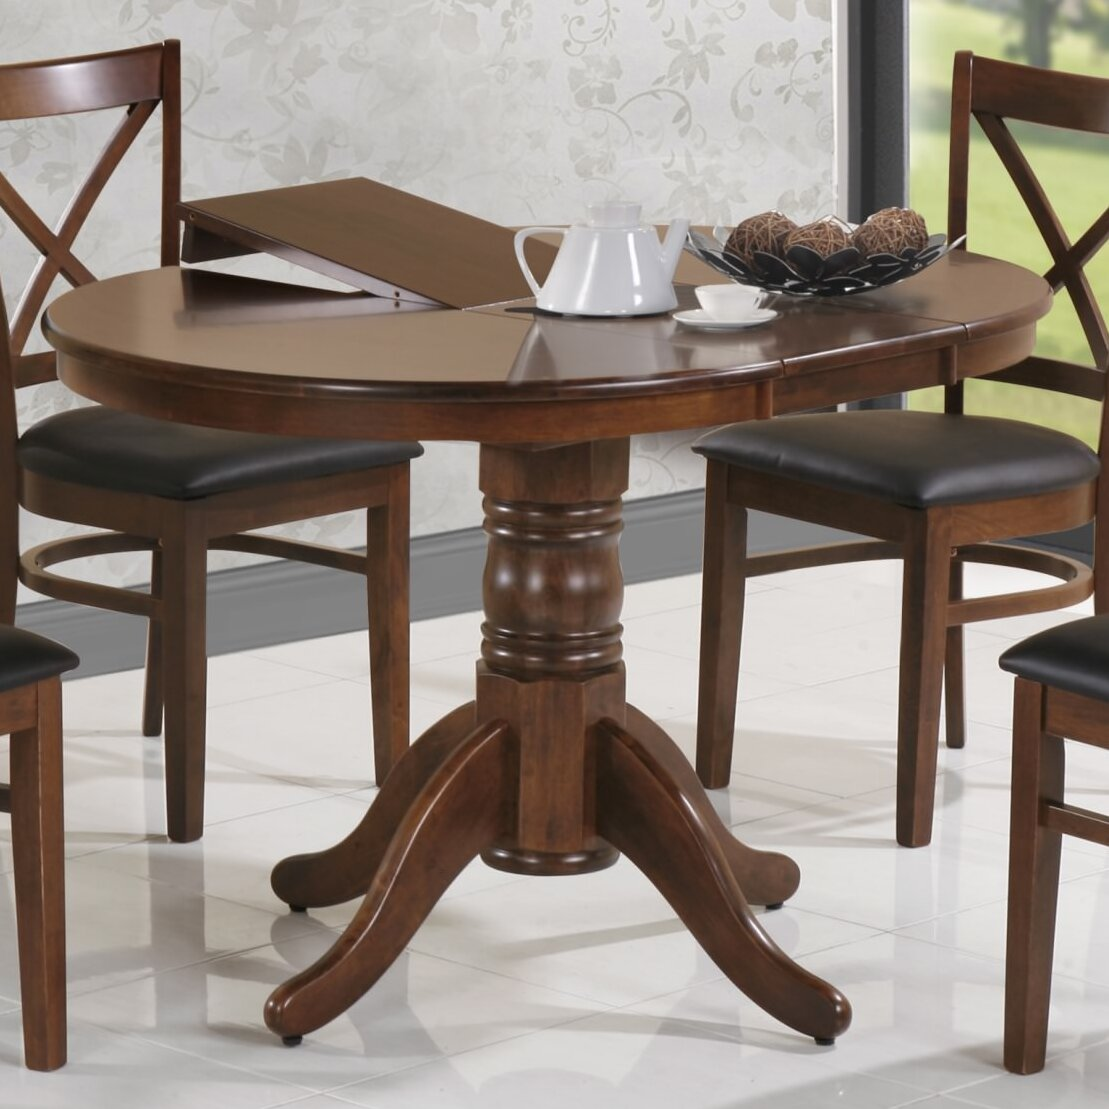 Winners Only Inc Birmingham 30quot Extendable Dining Table  : Winners Only Inc Birmingham 30 Extendable Dining Table from www.wayfair.ca size 1109 x 1109 jpeg 133kB